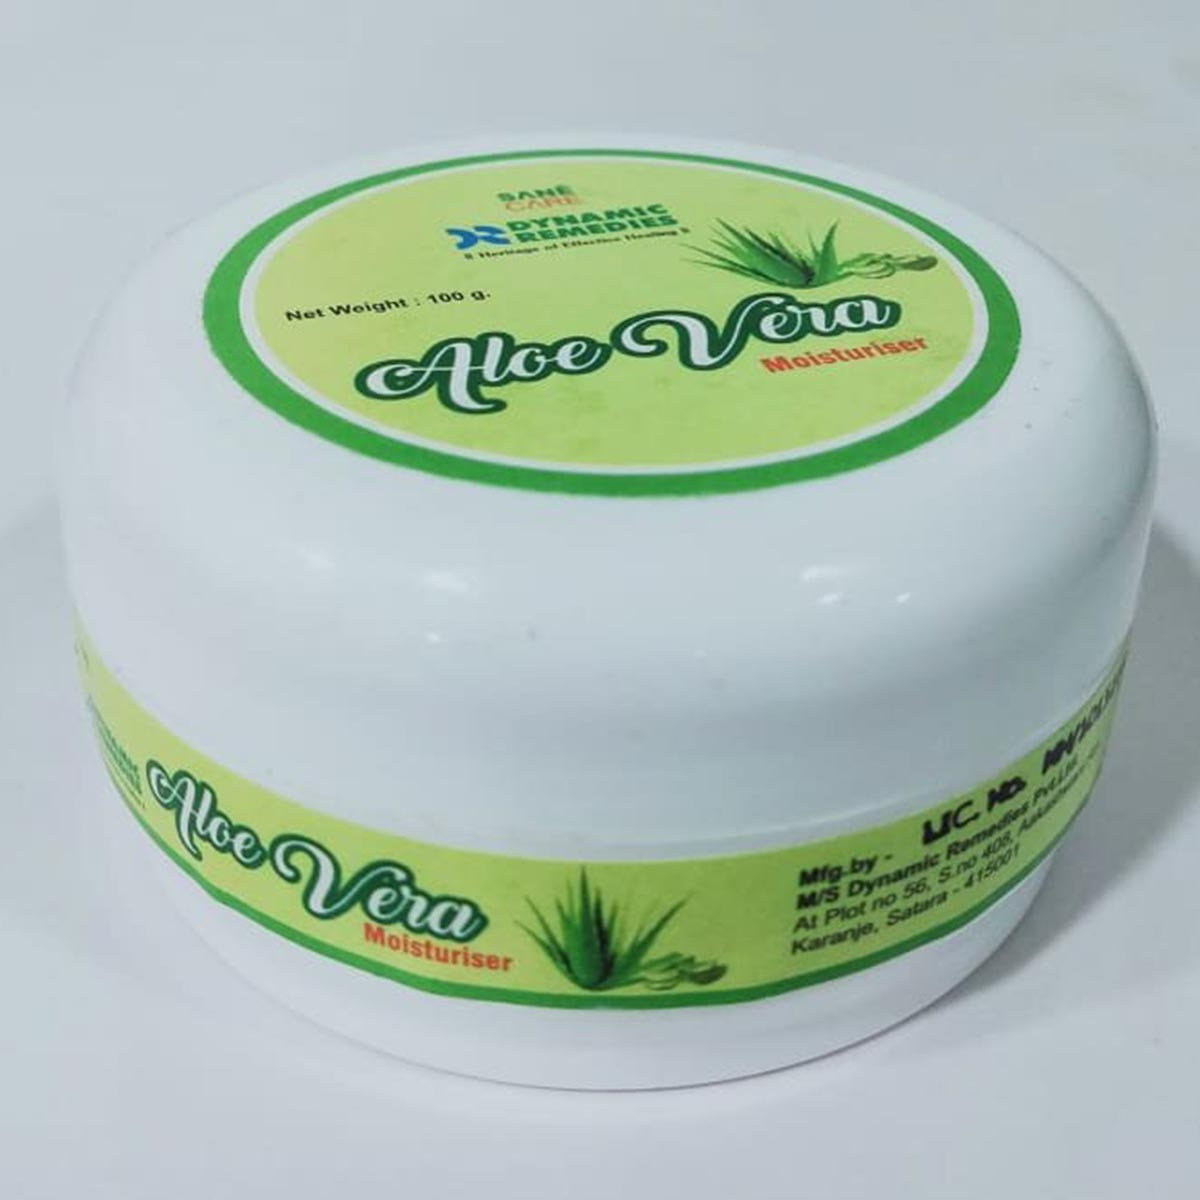 Sane Care Pearly Aloe Vera Moisturiser Side